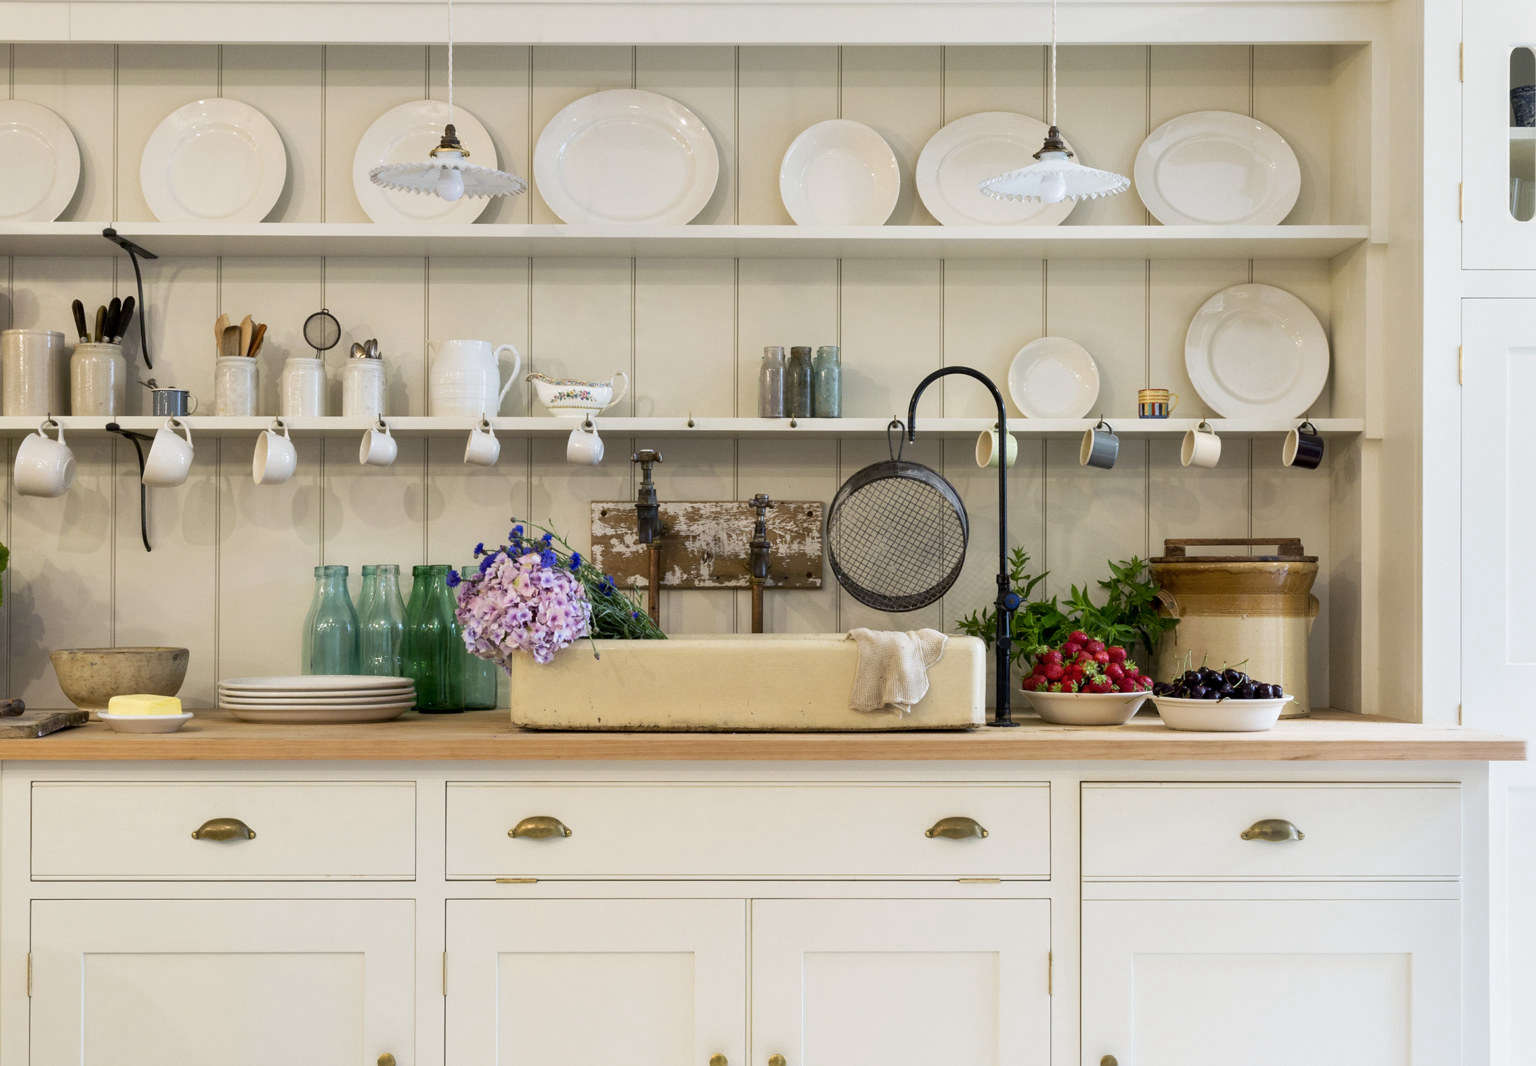 commercial kitchens kitchen through wall exhaust fan trending on remodelista 5 design ideas to steal from where better find inspiration for your own remodel the editors spent week sleuthing out best